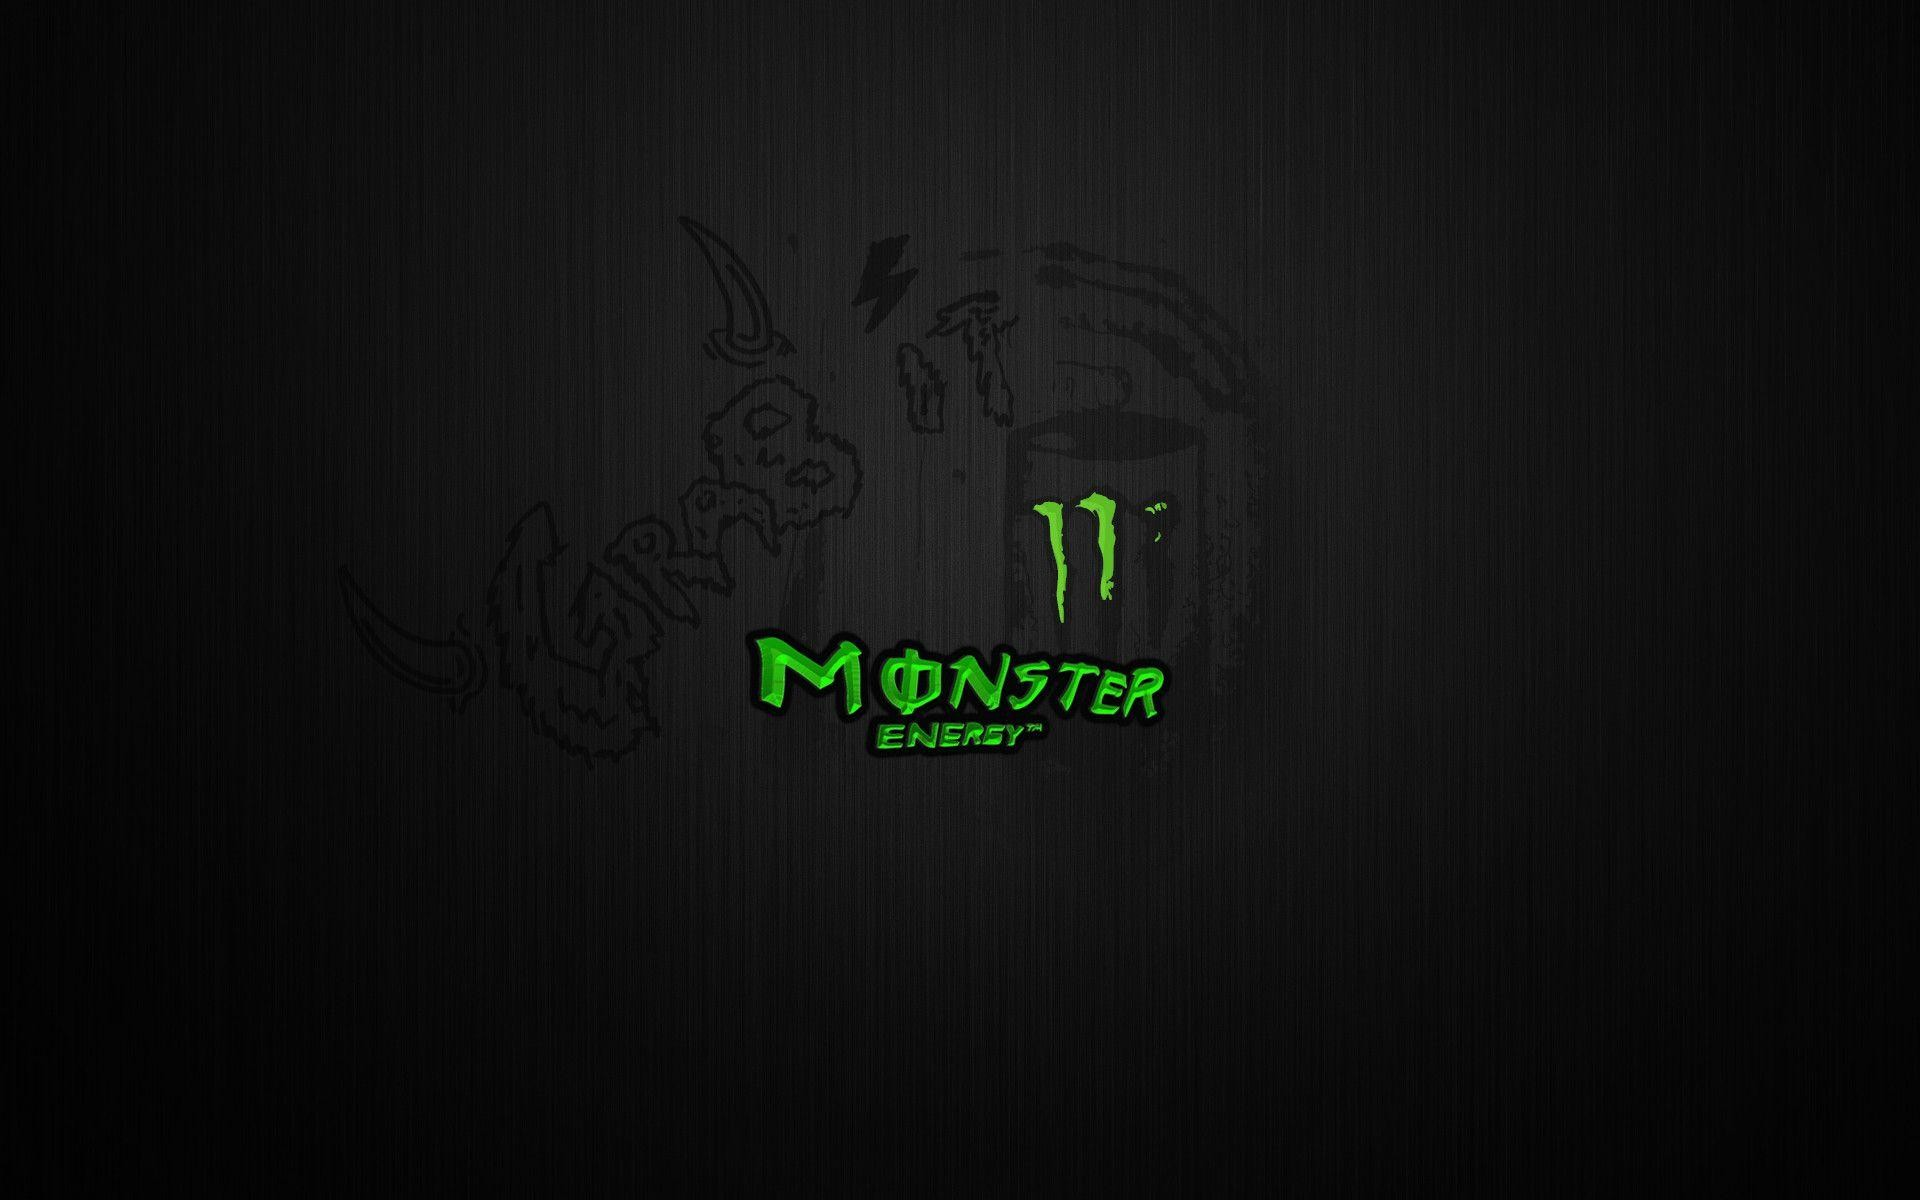 1920x1200 monster energy wallpapers hd wallpaper cave rh wallpapercave com Monster Energy  HD Wallpapers 1080P Monster Energy